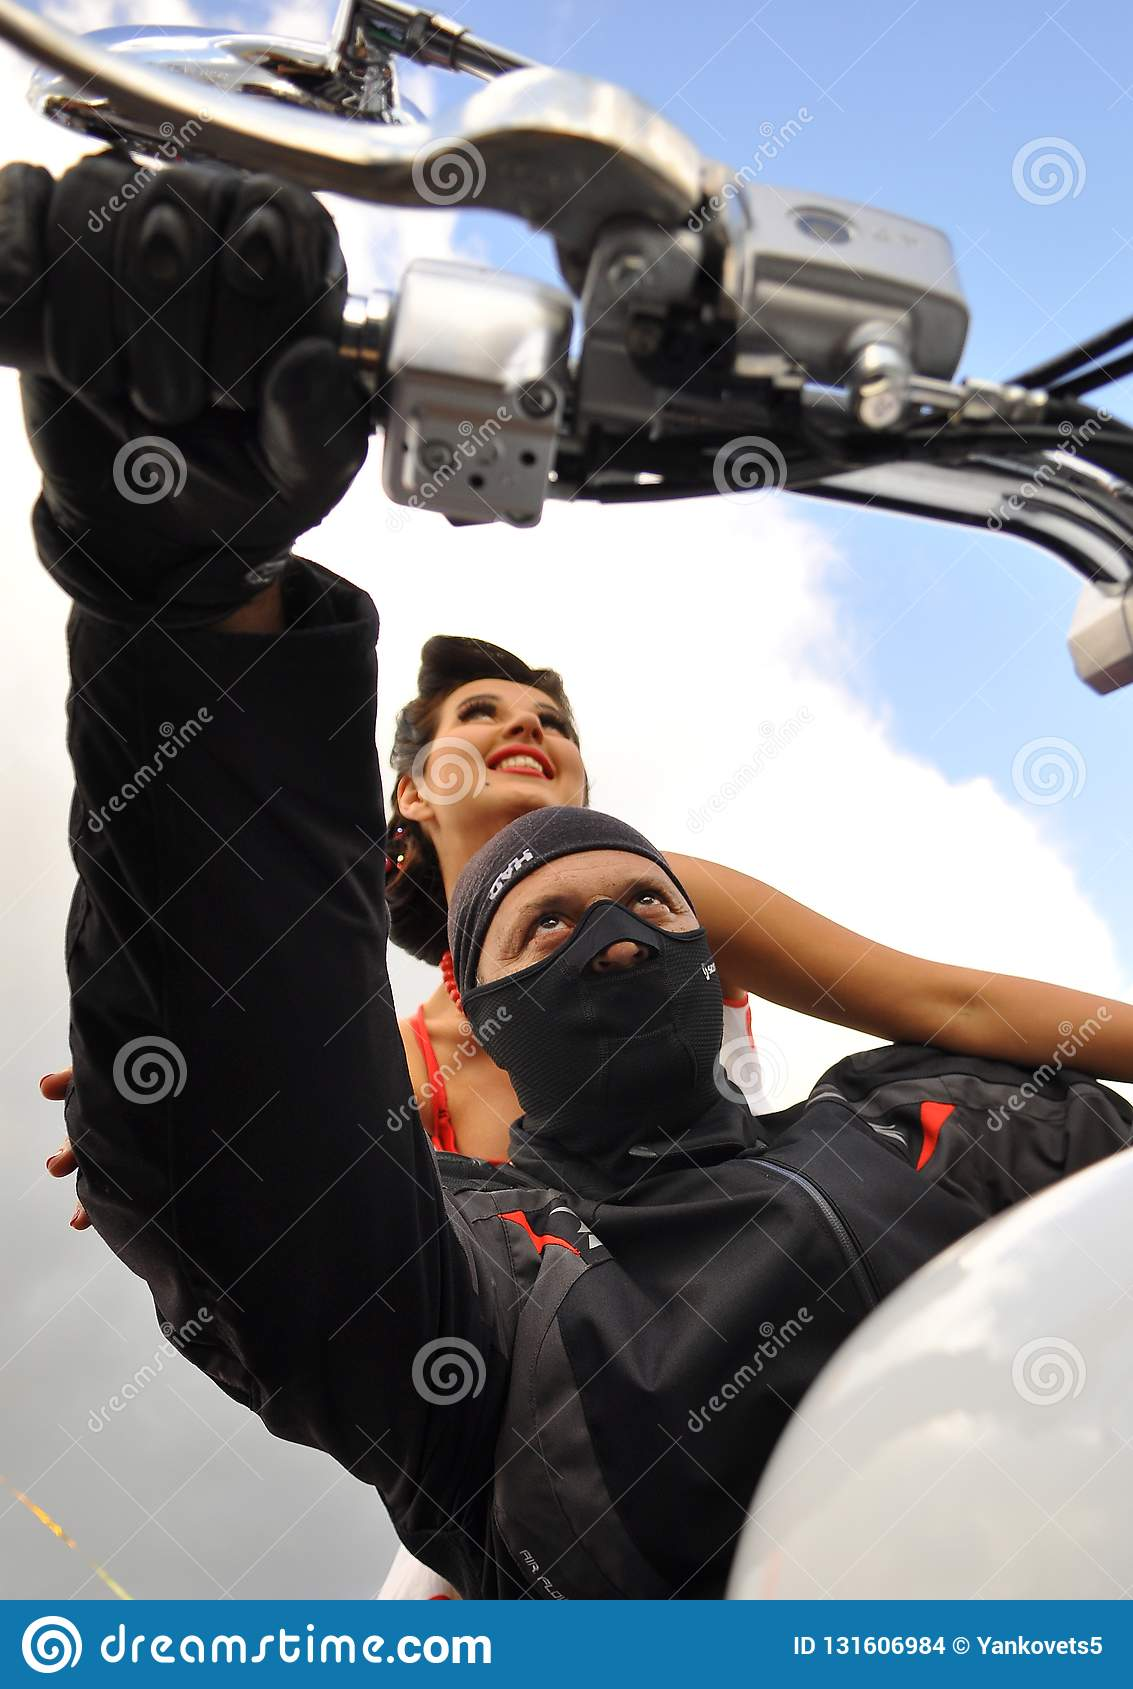 A man in a black mask sits behind the wheel of a white motorcycle behind him sits a beautiful girl on a background of the blue sky